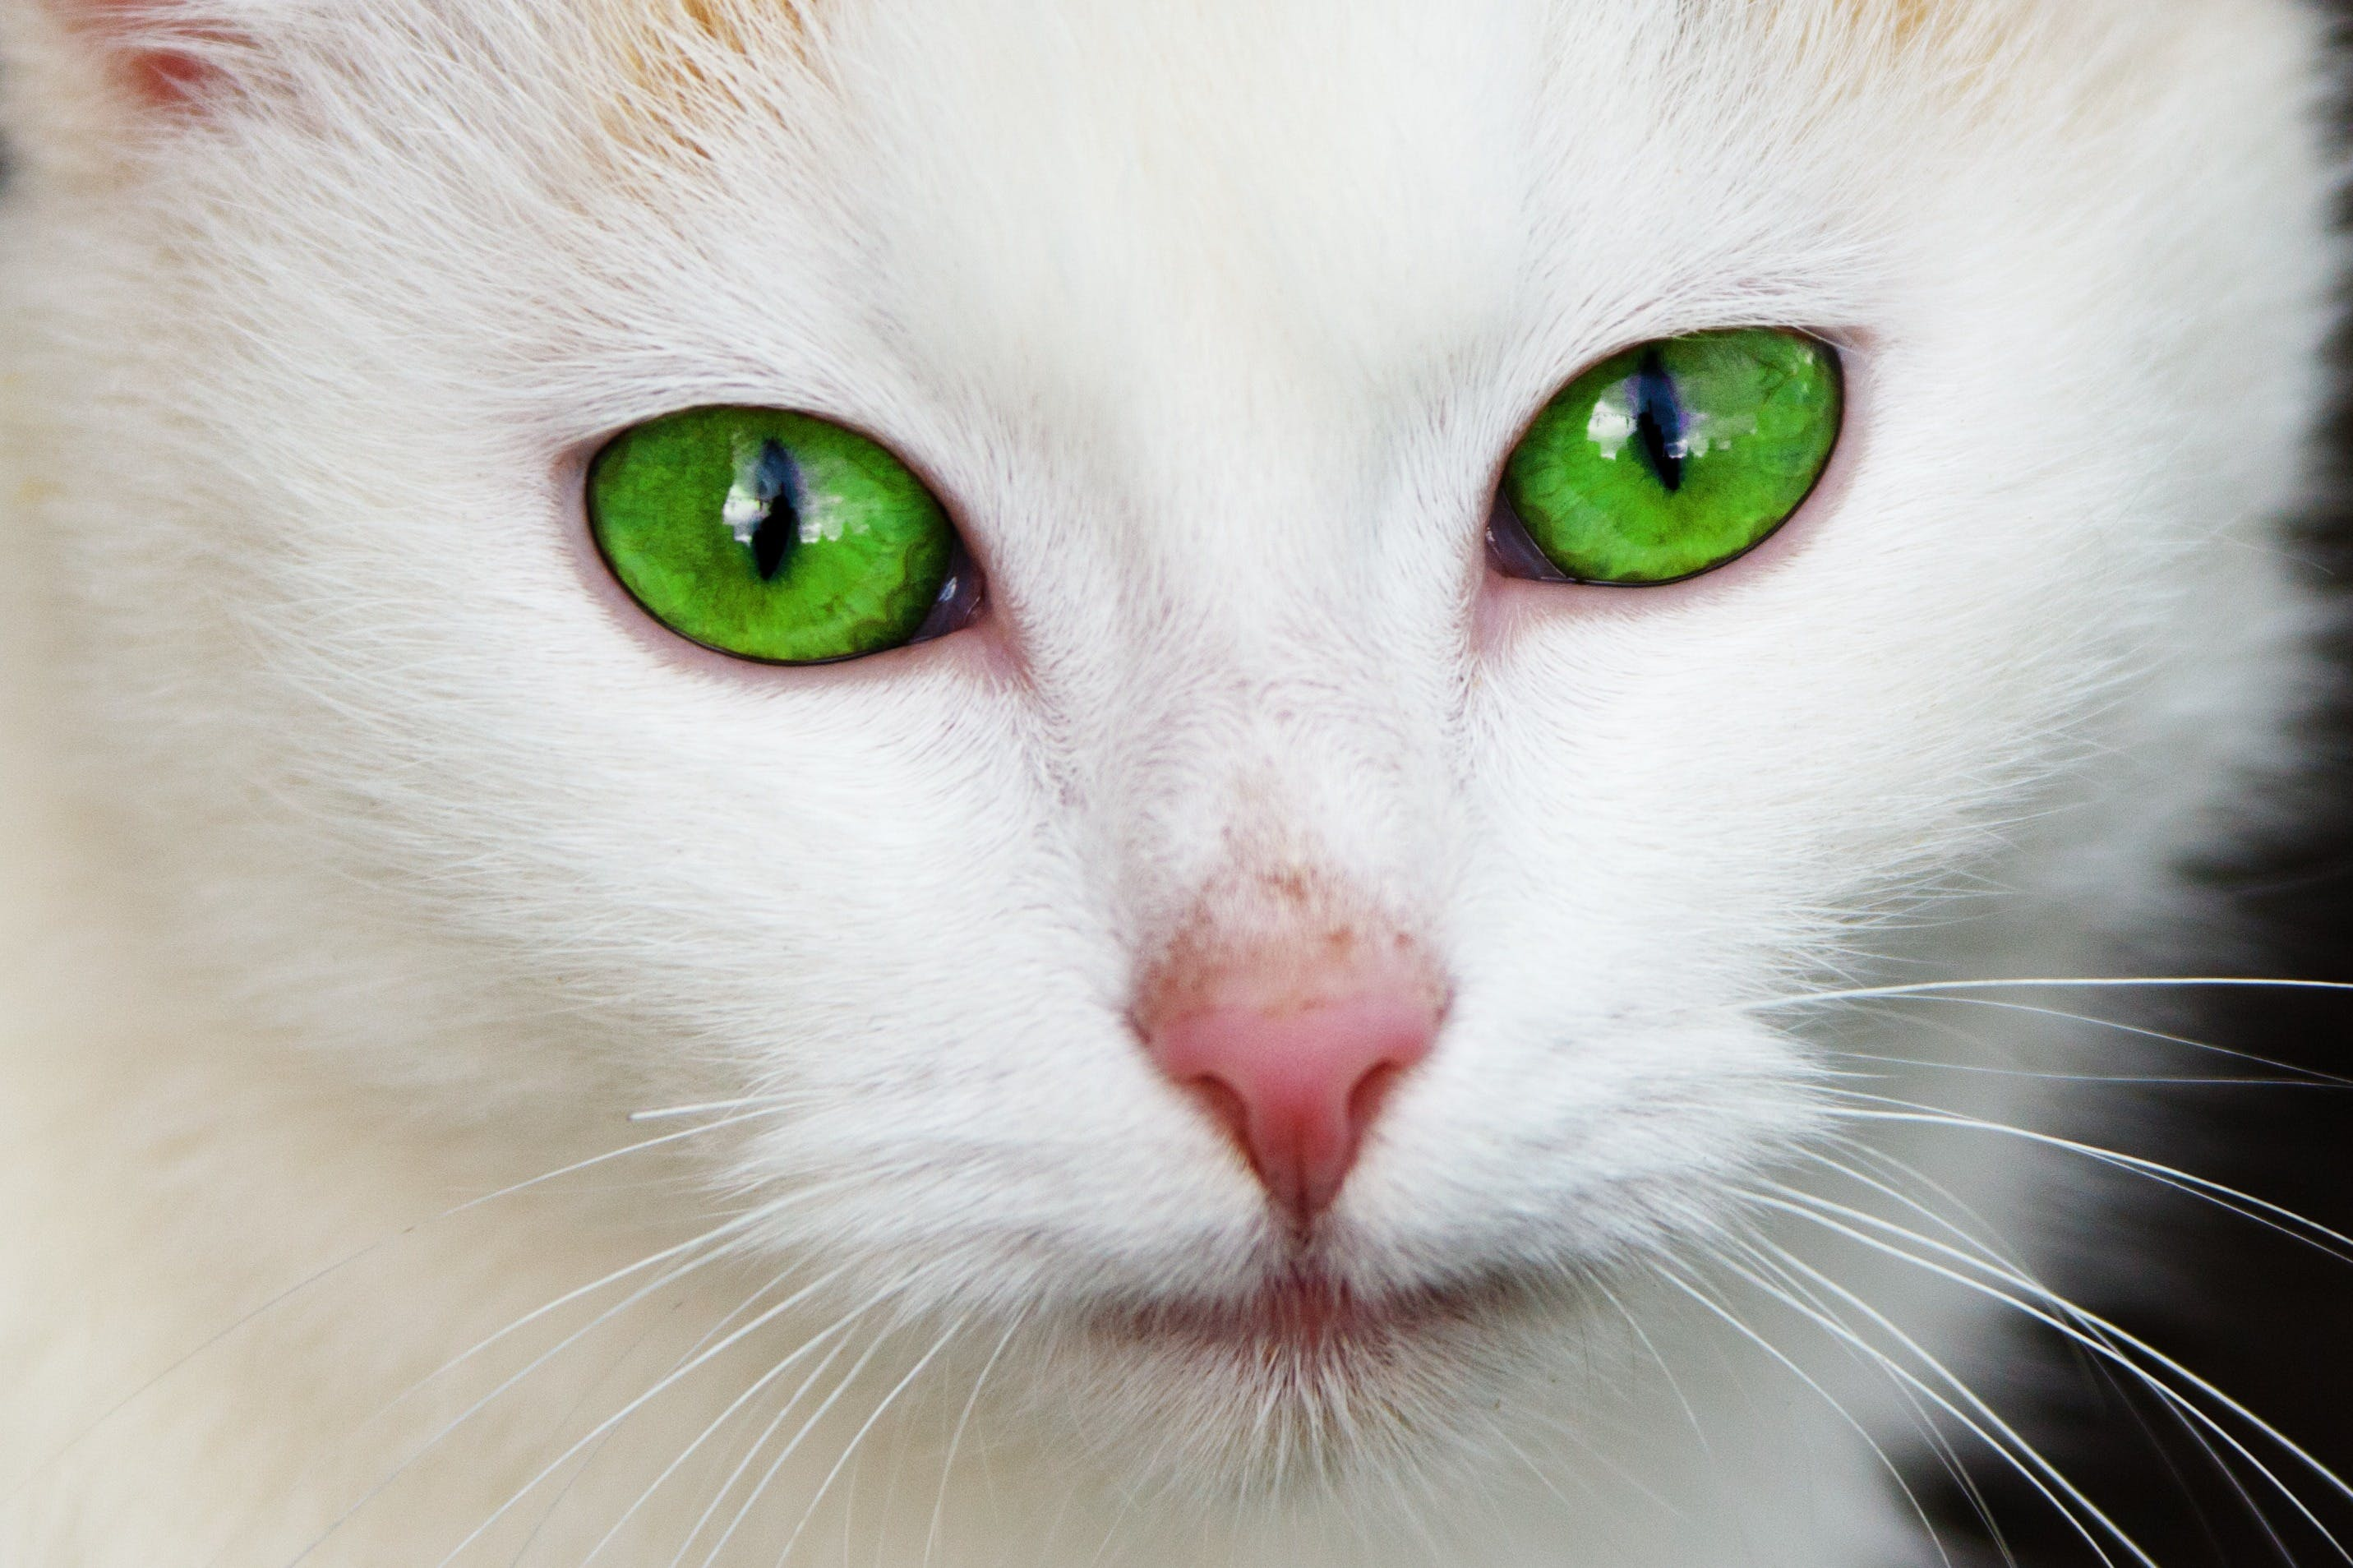 White Coated Cat With Green Eyes